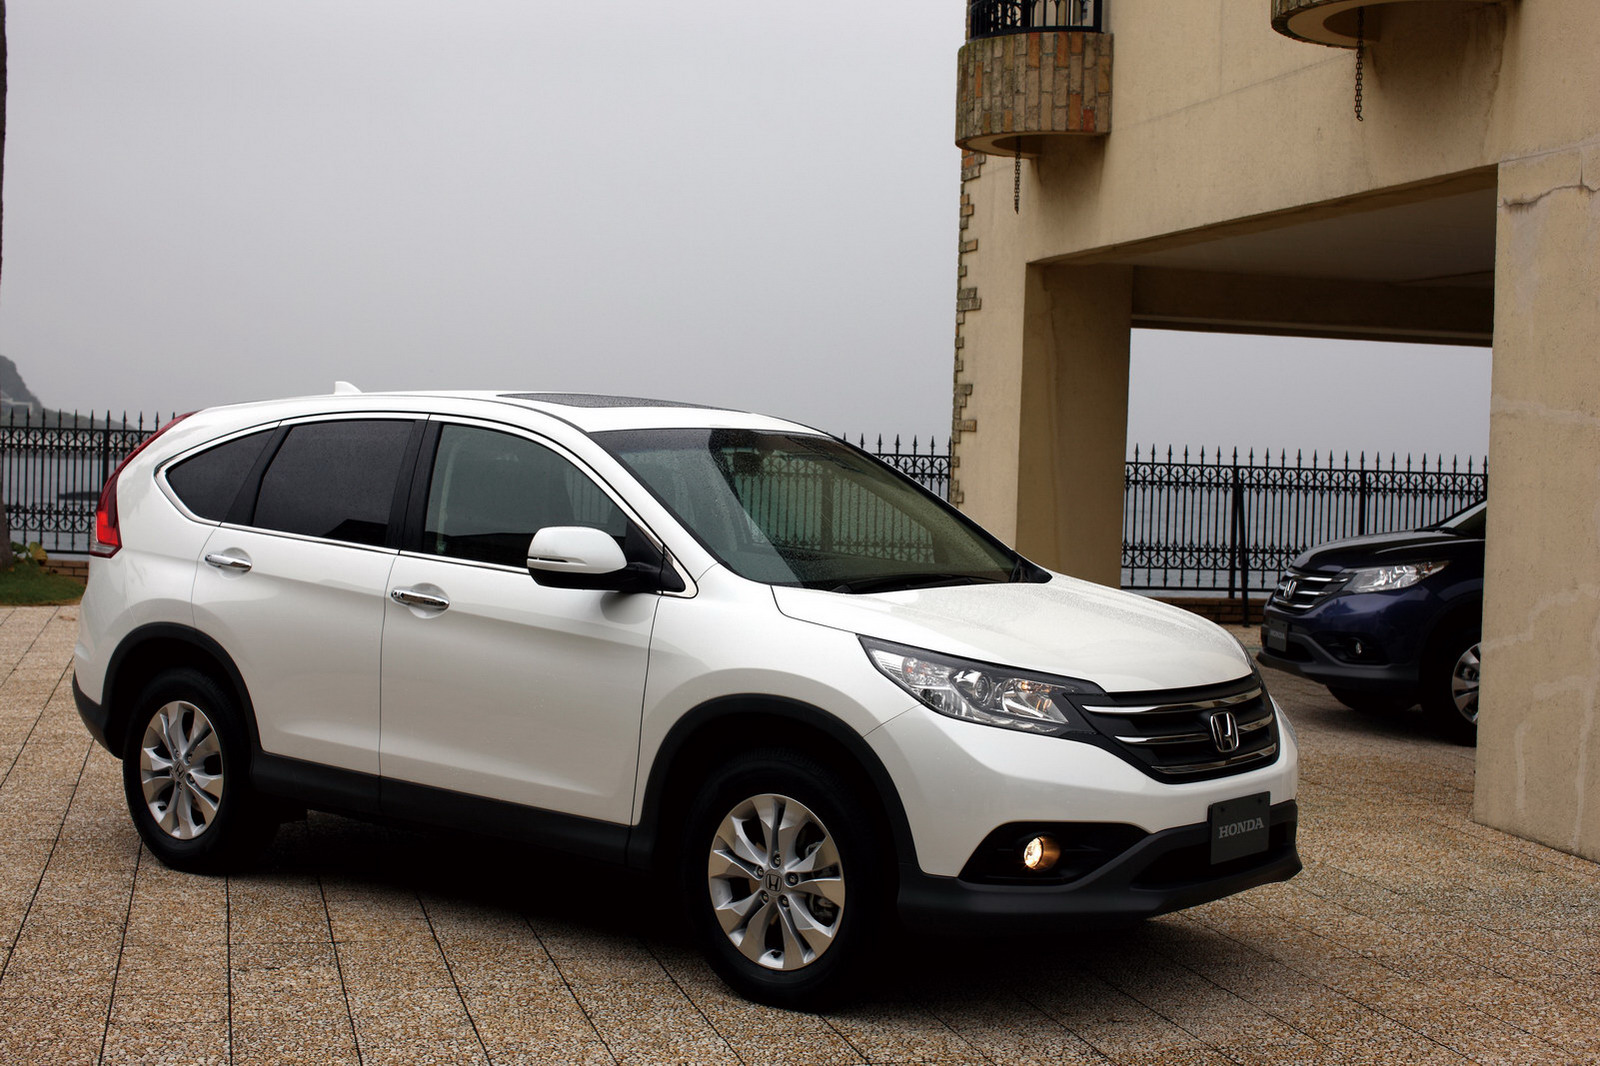 Honda cr-v photo - 3